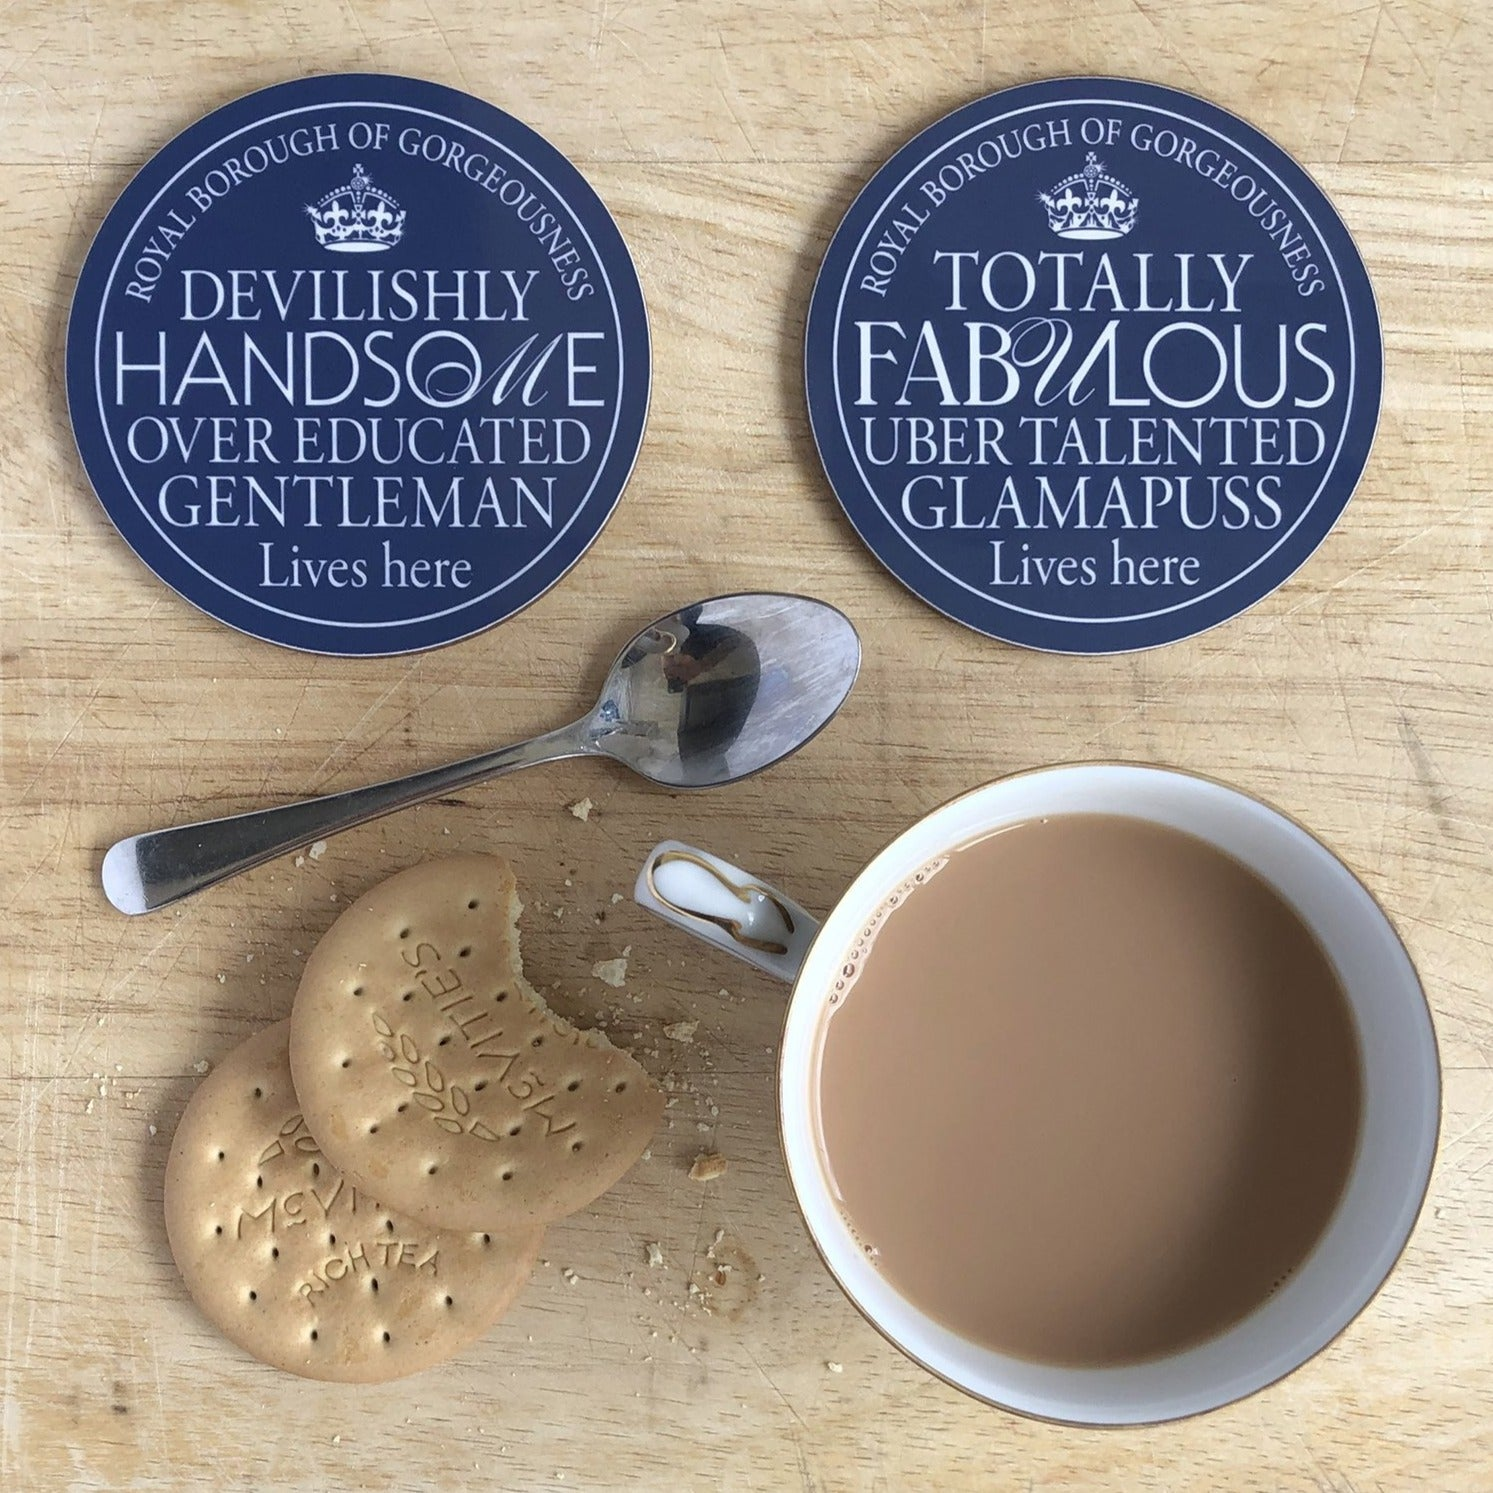 Handsome Gentleman & Fabulous Glamapuss Blue Plaque Coasters